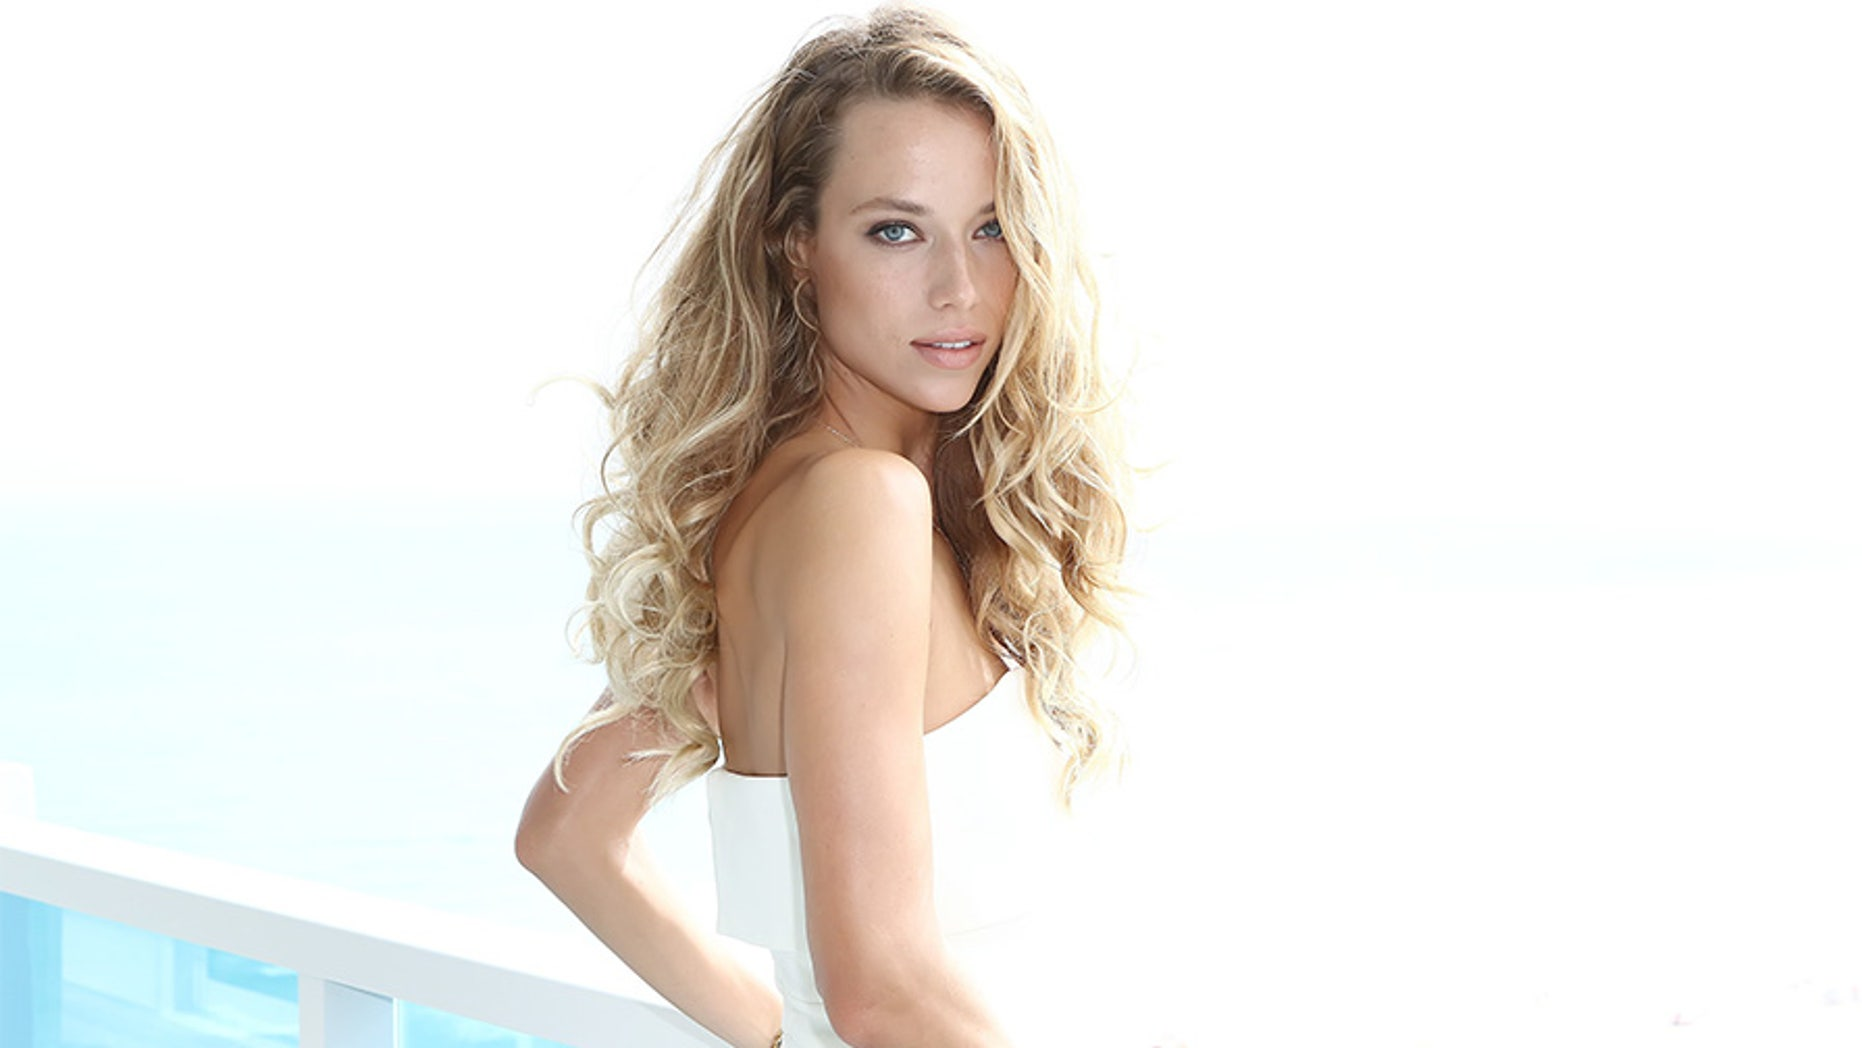 Sports Illustrated Swimsuit model Hannah Ferguson. The 26-year-old beauty has never forgotten her Southern roots.